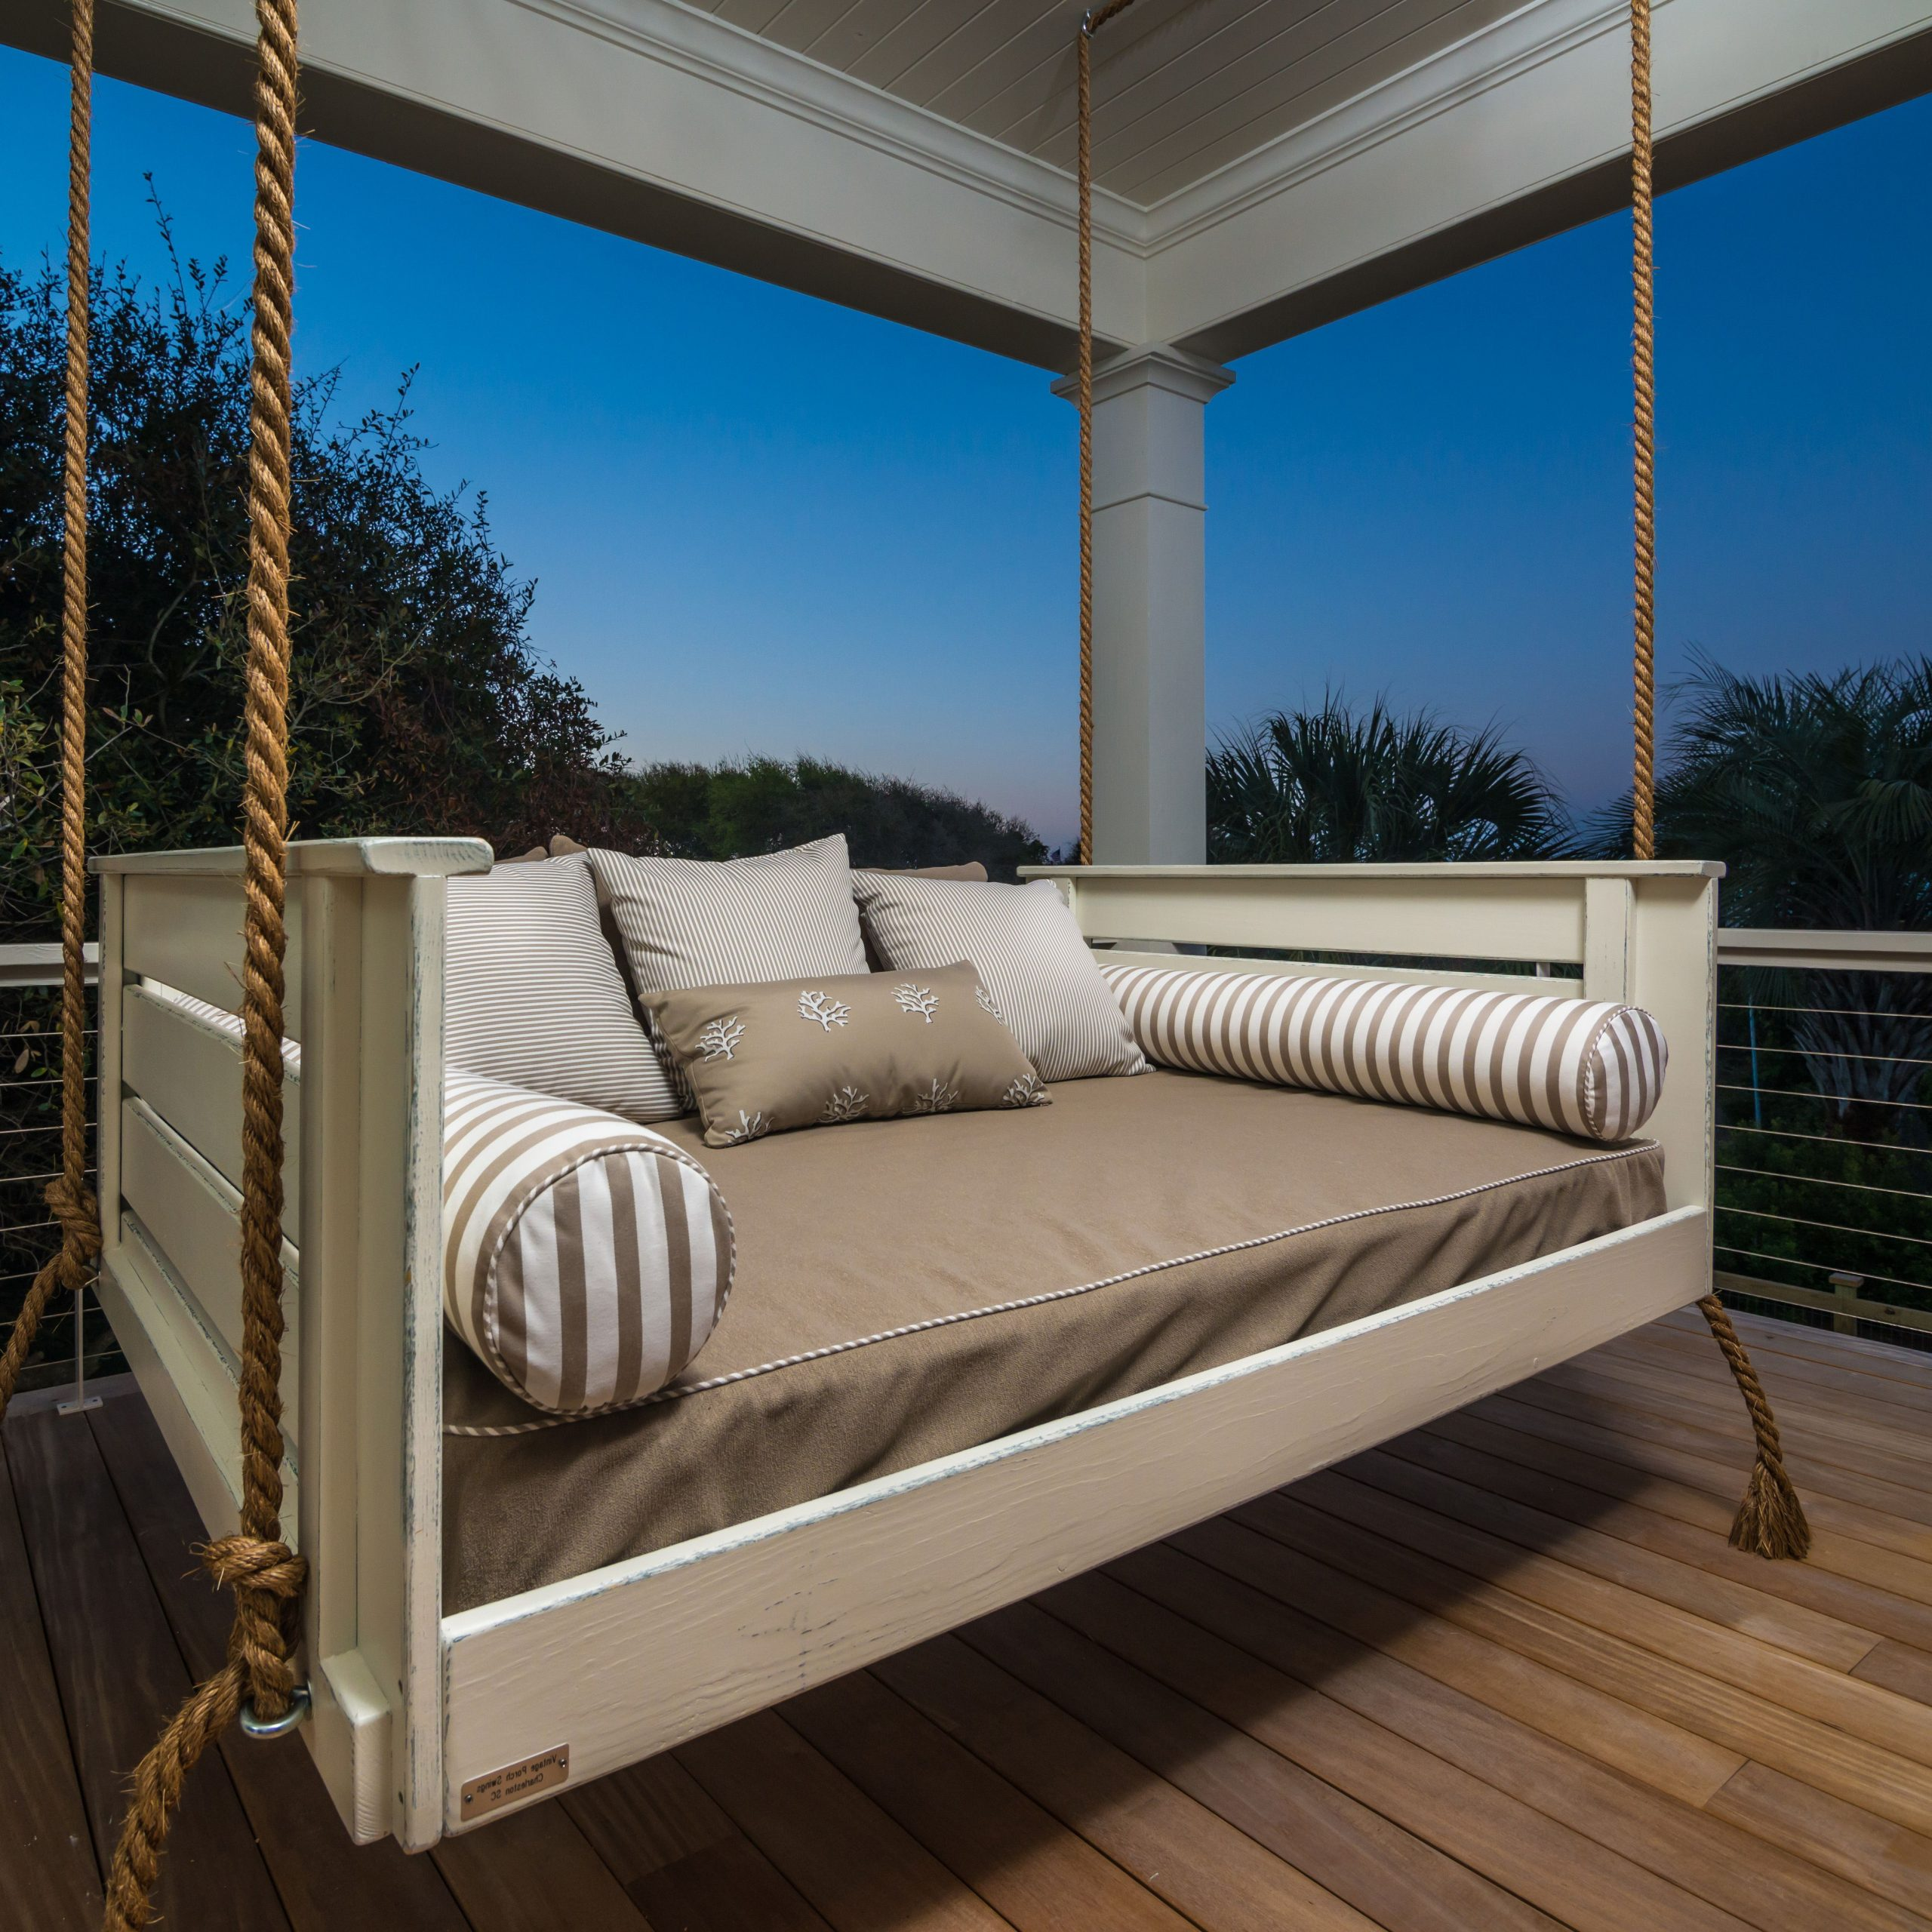 Hanging Daybed Rope Porch Swings For Favorite New Hanging Daybed Swing – New Design Model (View 12 of 30)